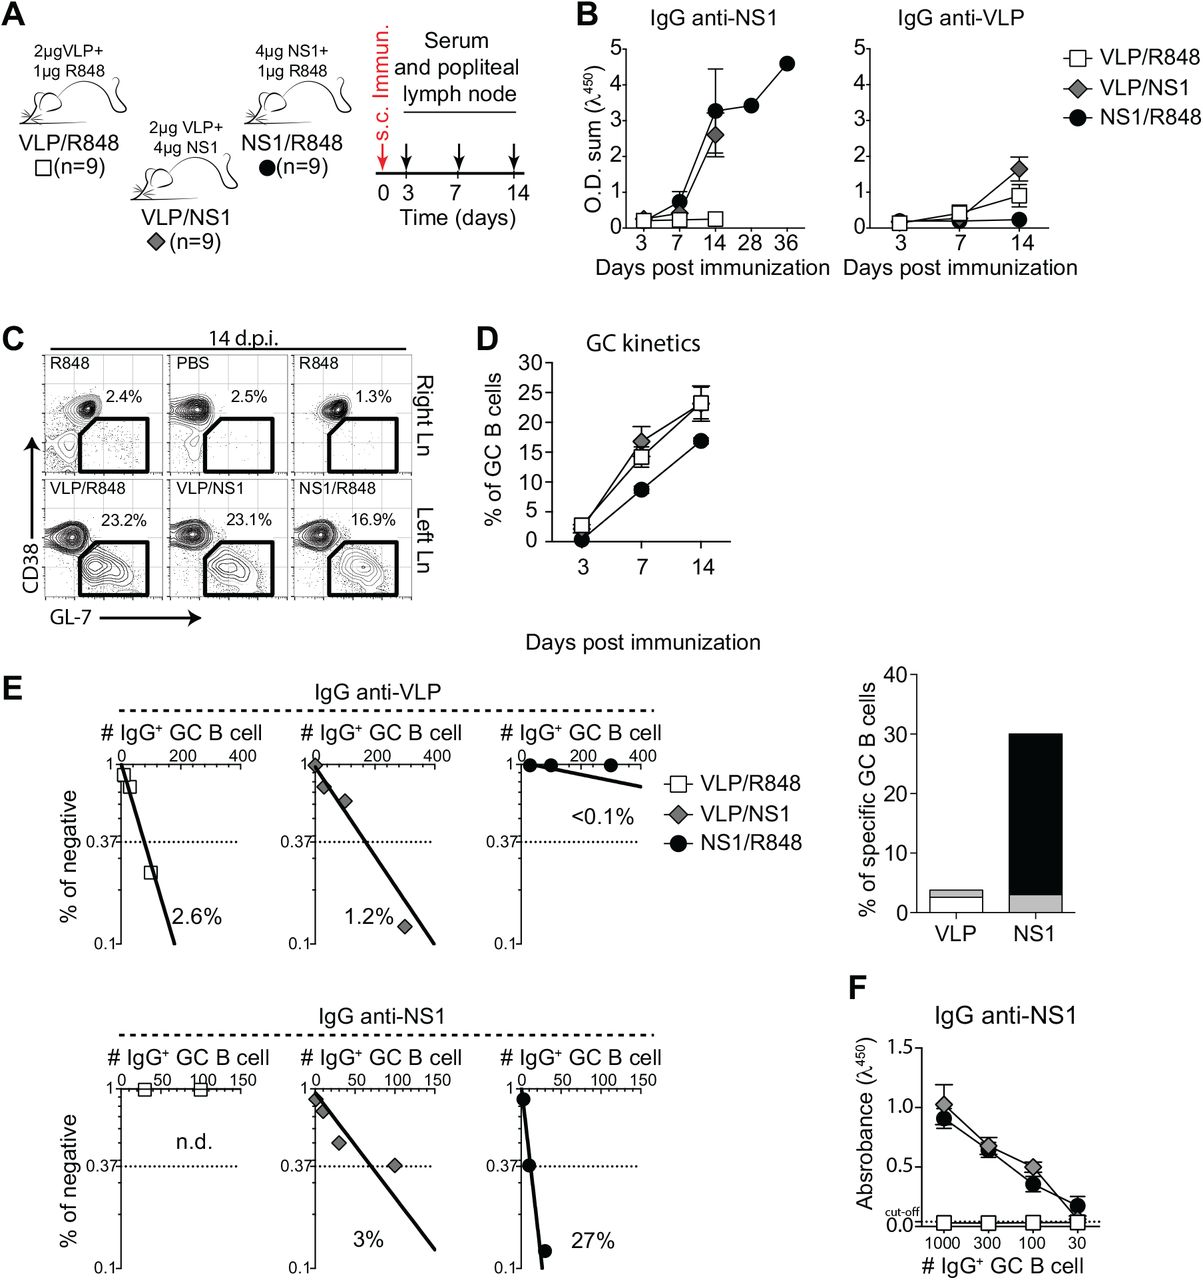 Antigen-specificity of B cells in germinal centers after immunization with ZIKV VLP and NS1. (A) Experimental design indicating the time points of foot pad subcutaneous immunization, serum samples and popliteal lymph nodes collections. (B) Kinetics of serum levels of IgG binding to ZIKV NS1 recombinant protein or ZIKV VLP, measured by ELISA. OD Sum is the sum of ODs of four serum dilutions (1:40, 1:120, 1:360 and 1:1080). ( C ) Representative plots of GC B cells (CD38 lo/− GL-7 + gated on B220 + CD138 − ) at day 14 post immunization. Mice were immunized in the left footpad. ( D ) Kinetics of frequency of germinal center (GC) B cells in left popliteal lymph nodes after immunization with NS1 (2 ug/mouse), VLP (2 ug/mouse) or both (4 ug of NS1 and 2 ug of VLP/mouse). Immunizations were adjuvanted with R848 (1ug/mouse). ( E ) GC B cells from popliteal lymph nodes of immunized mice were sorted and cultured in decreasing cells numbers/well (300, 100, 30, 10 cells/well). Supernatants were collected on day 7 and screened for IgG secretion by ELISA. Supernatants that revealed the presence of IgG were tested for antigen specificity by ELISA. Frequencies of IgG + GC B cells that bound VLP (upper panel) or NS1 (lower panel) were calculated utilizing Poisson distribution and are summarized on the right graph. Cell culture was performed on a monolayer of gamma-irradiated (20 Gy) NB40L feeder cells (3 × 10 3 cells/well), LPS (30 μg/mL) and IL-21 (2 ng/mL). ( F ) OD of IgG + supernatants of different cell numbers/well binding to ZIKV NS1, measured by ELISA.